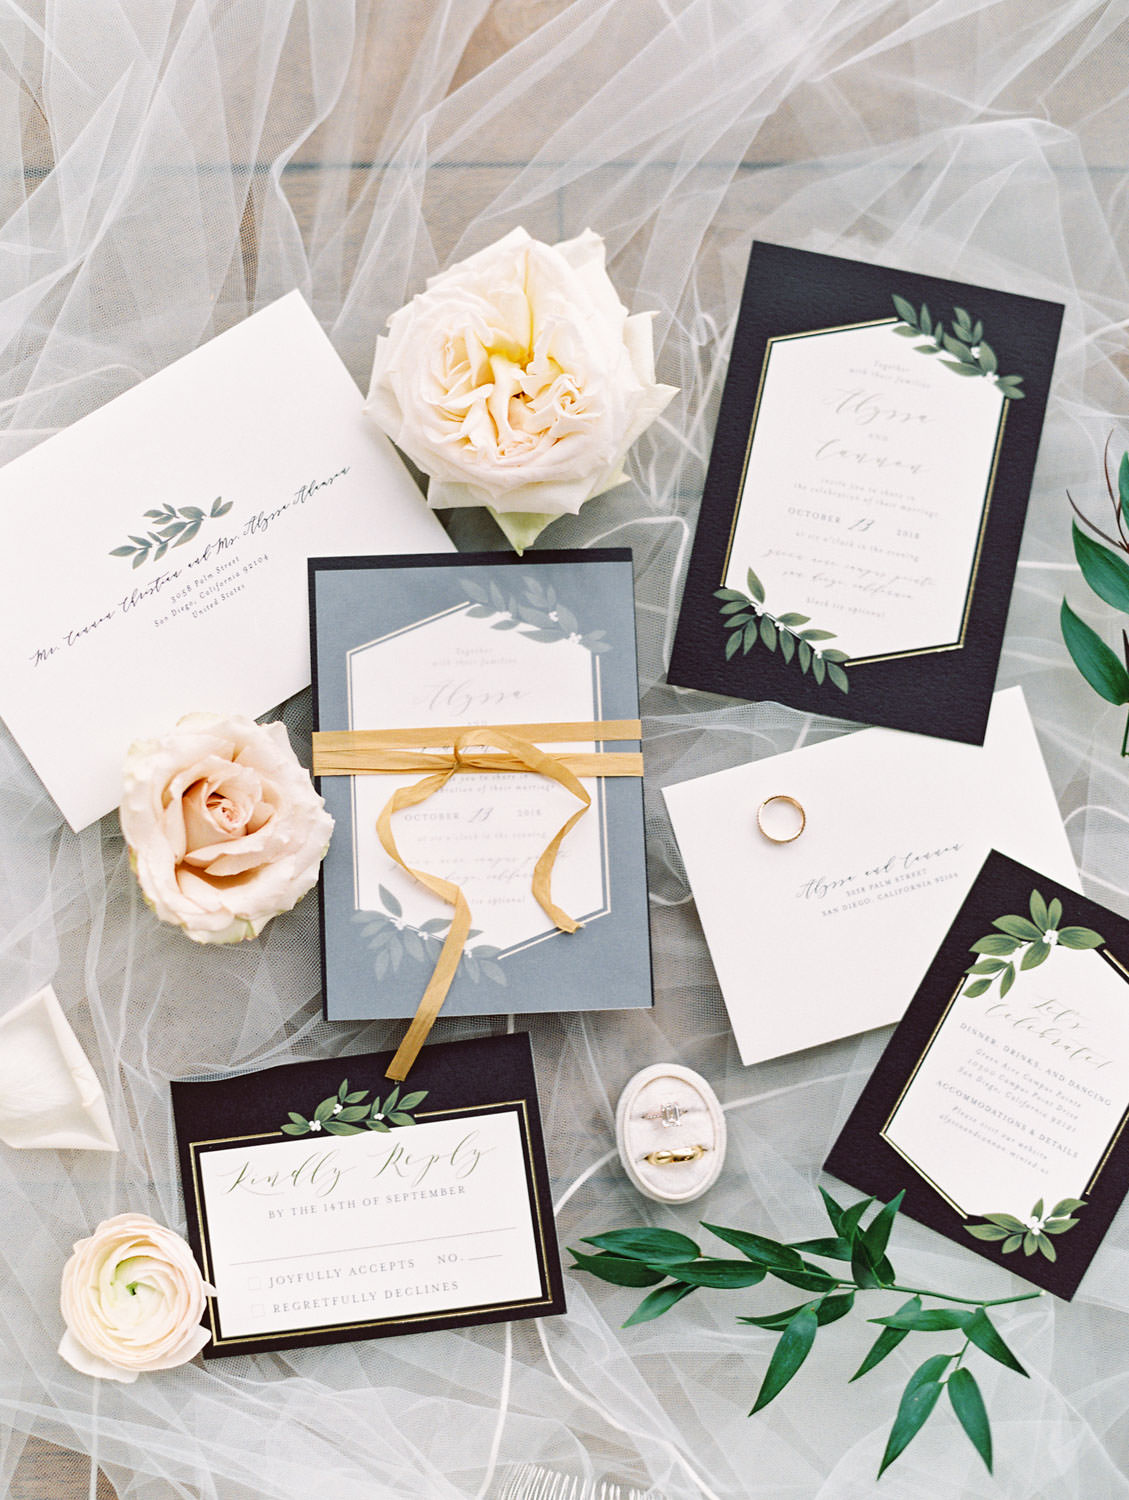 Black and white wedding invitation suite with greenery illustration and gold ribbon styled with flowers and rings, film photo by Cavin Elizabeth